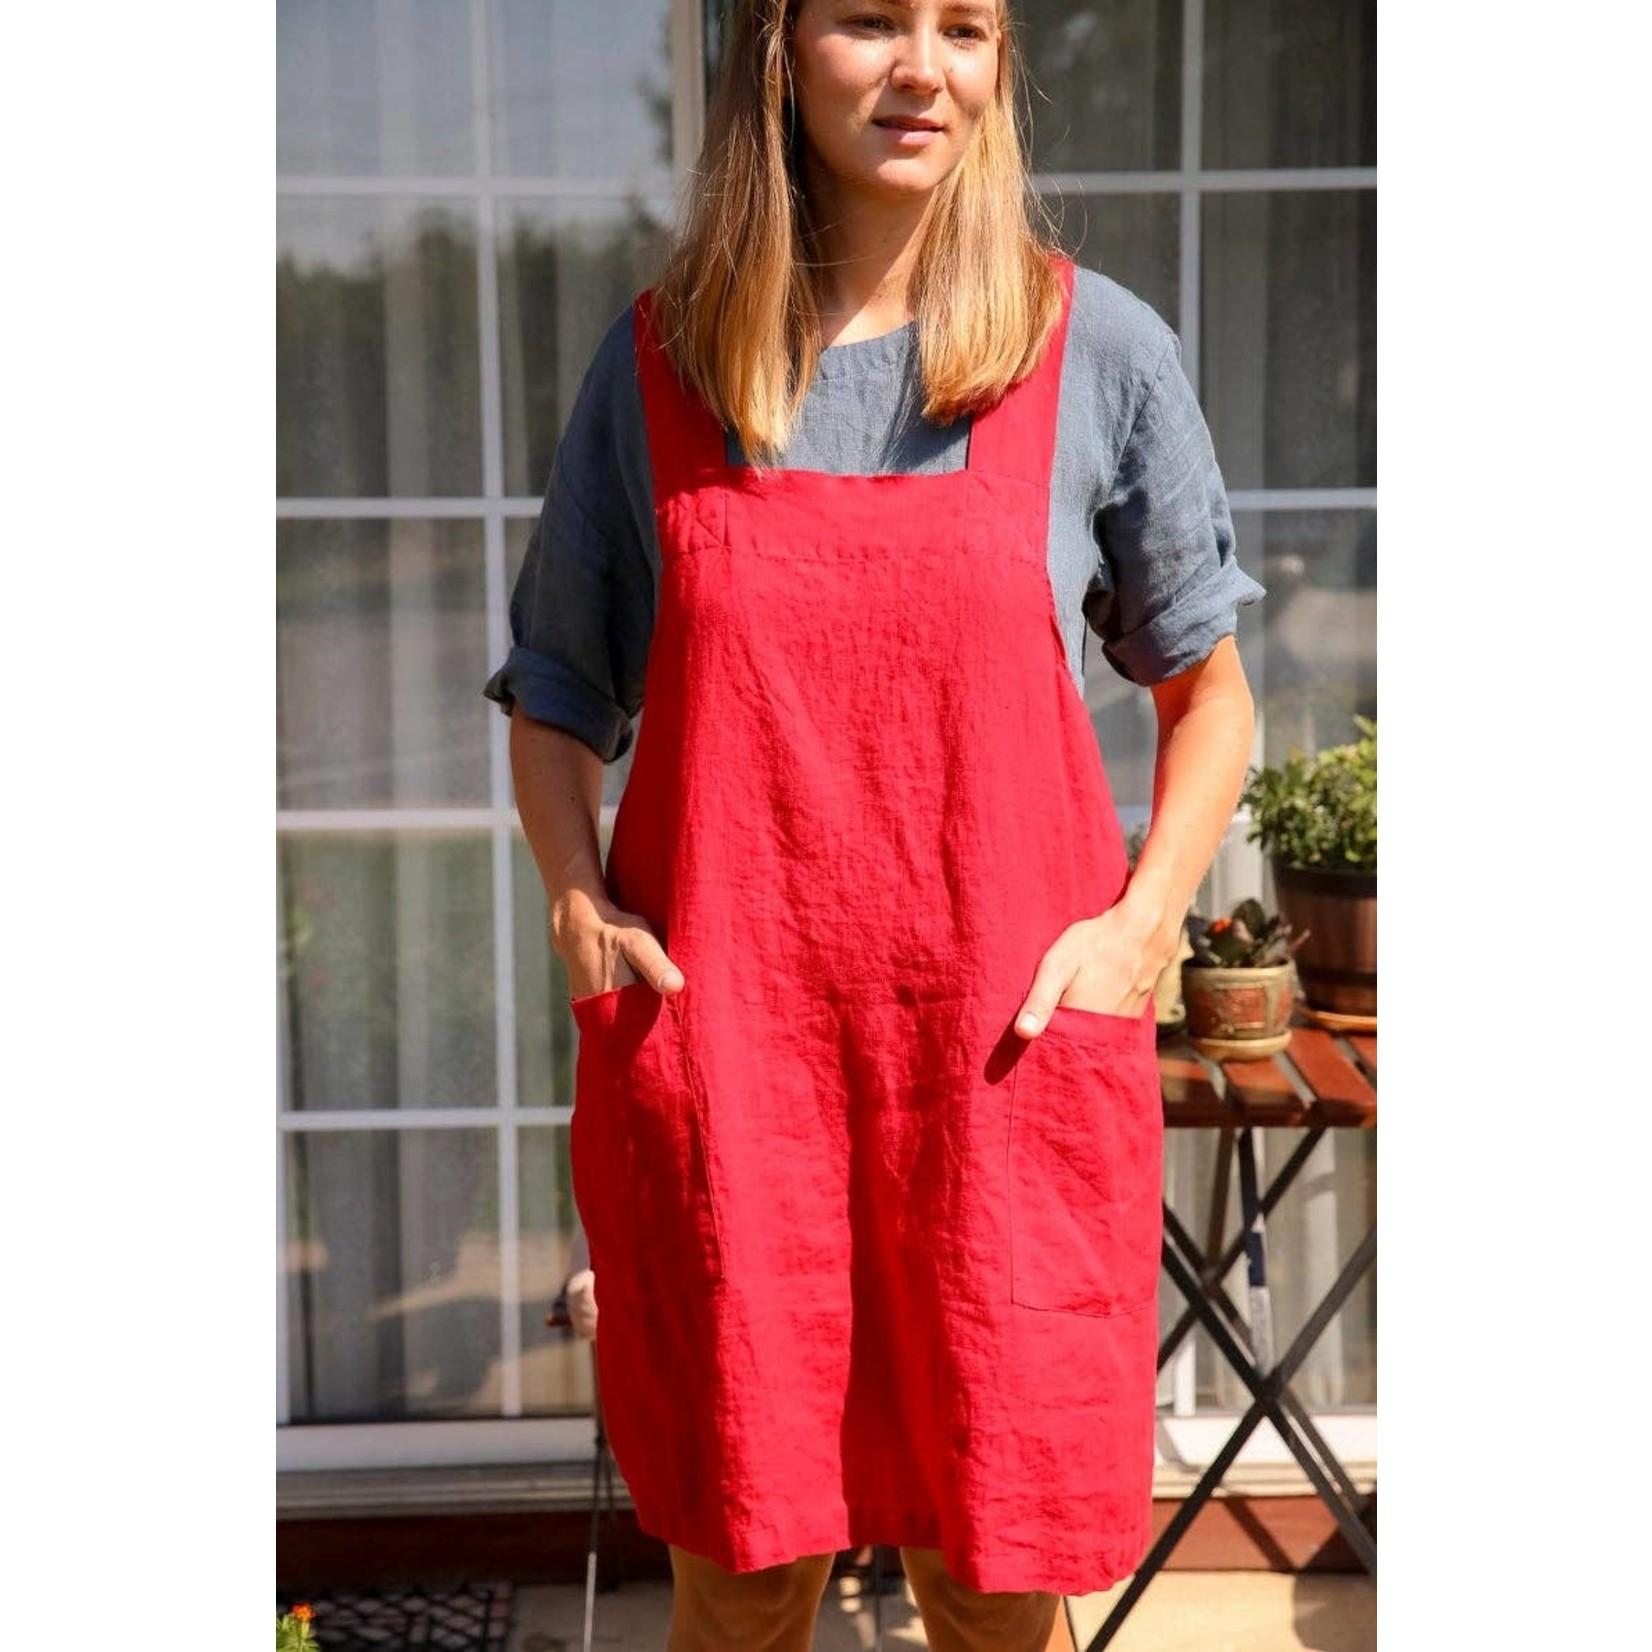 Vikolino Linen Pinafore (Japanese Apron) in Red